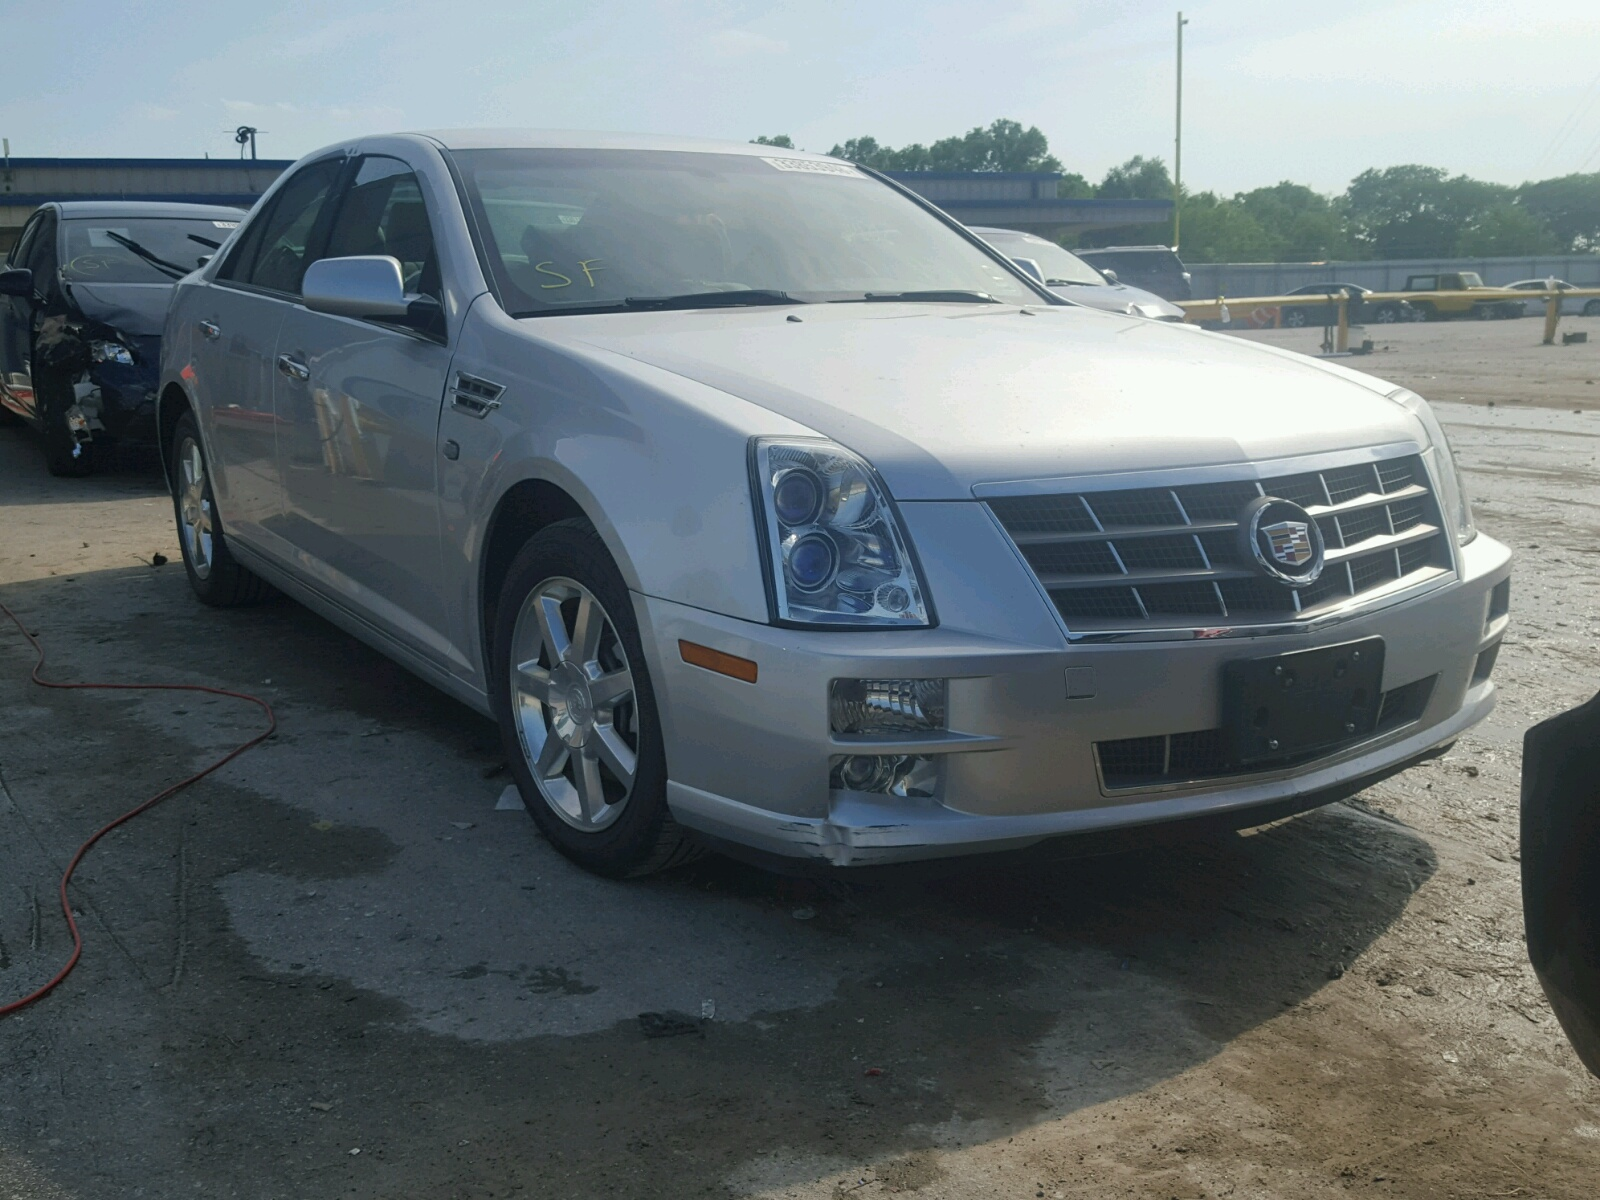 panoramic sts purp listings cars full cadillac cts about roof all